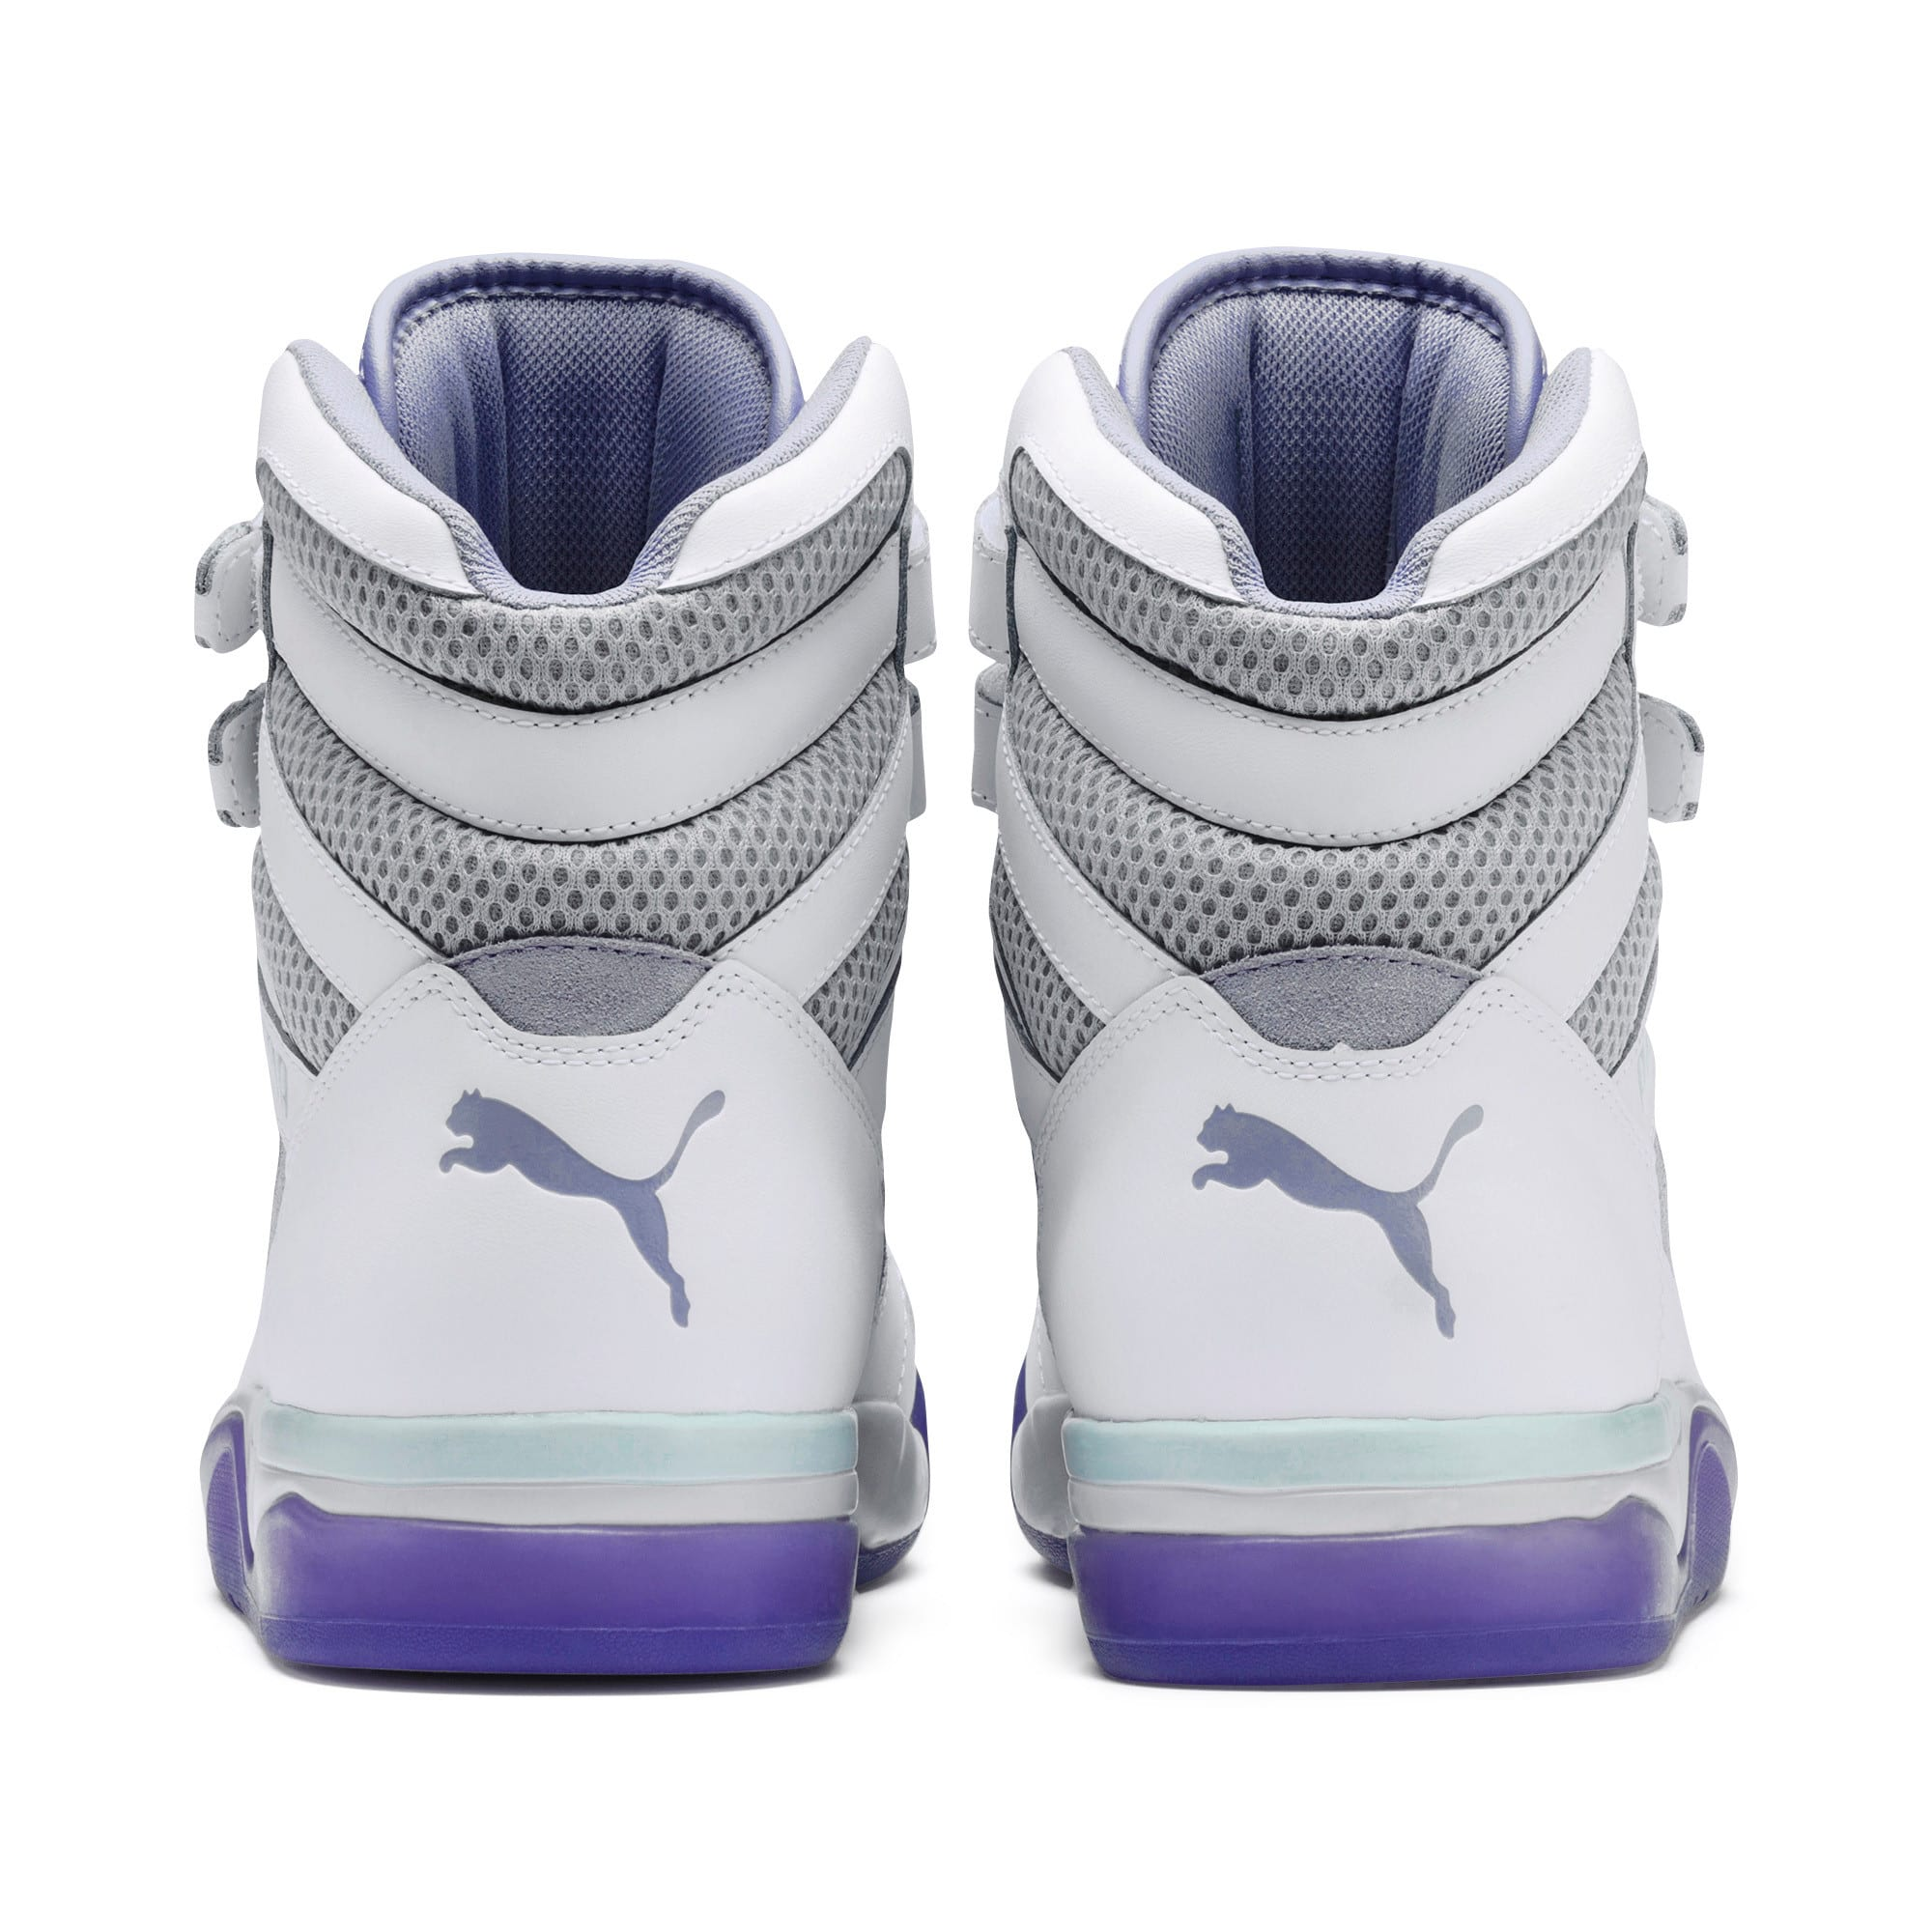 Thumbnail 4 of Palace Guard Mid Easter Sneakers, PWht-Dandelion-Prism Violet, medium